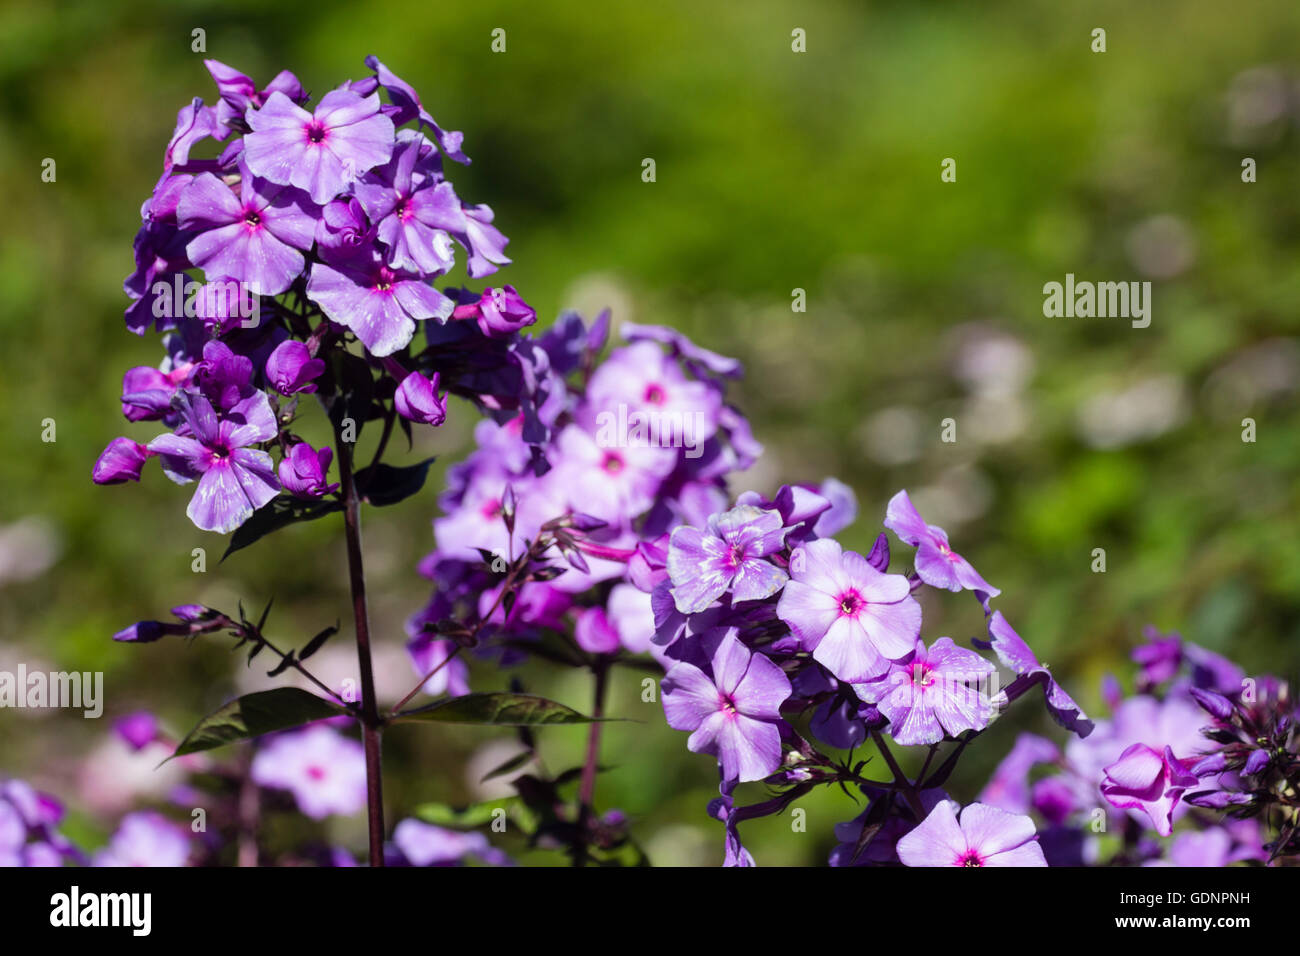 Perennial phlox stock photos perennial phlox stock images alamy flower head of the scented perennial phlox paniculata blue paradise stock image mightylinksfo